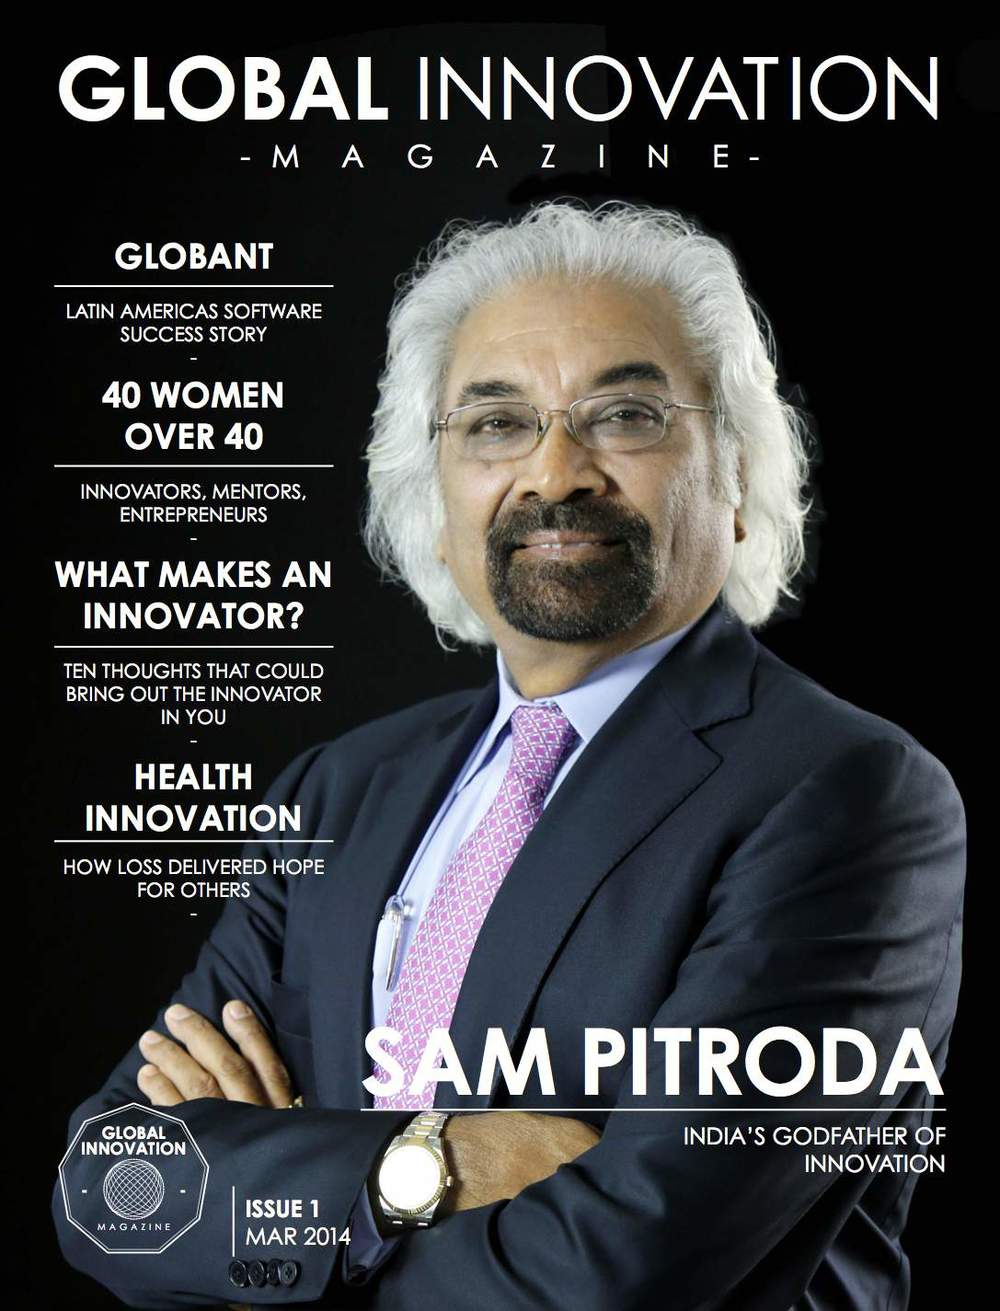 GlobalInnovationIssue1-2.jpg